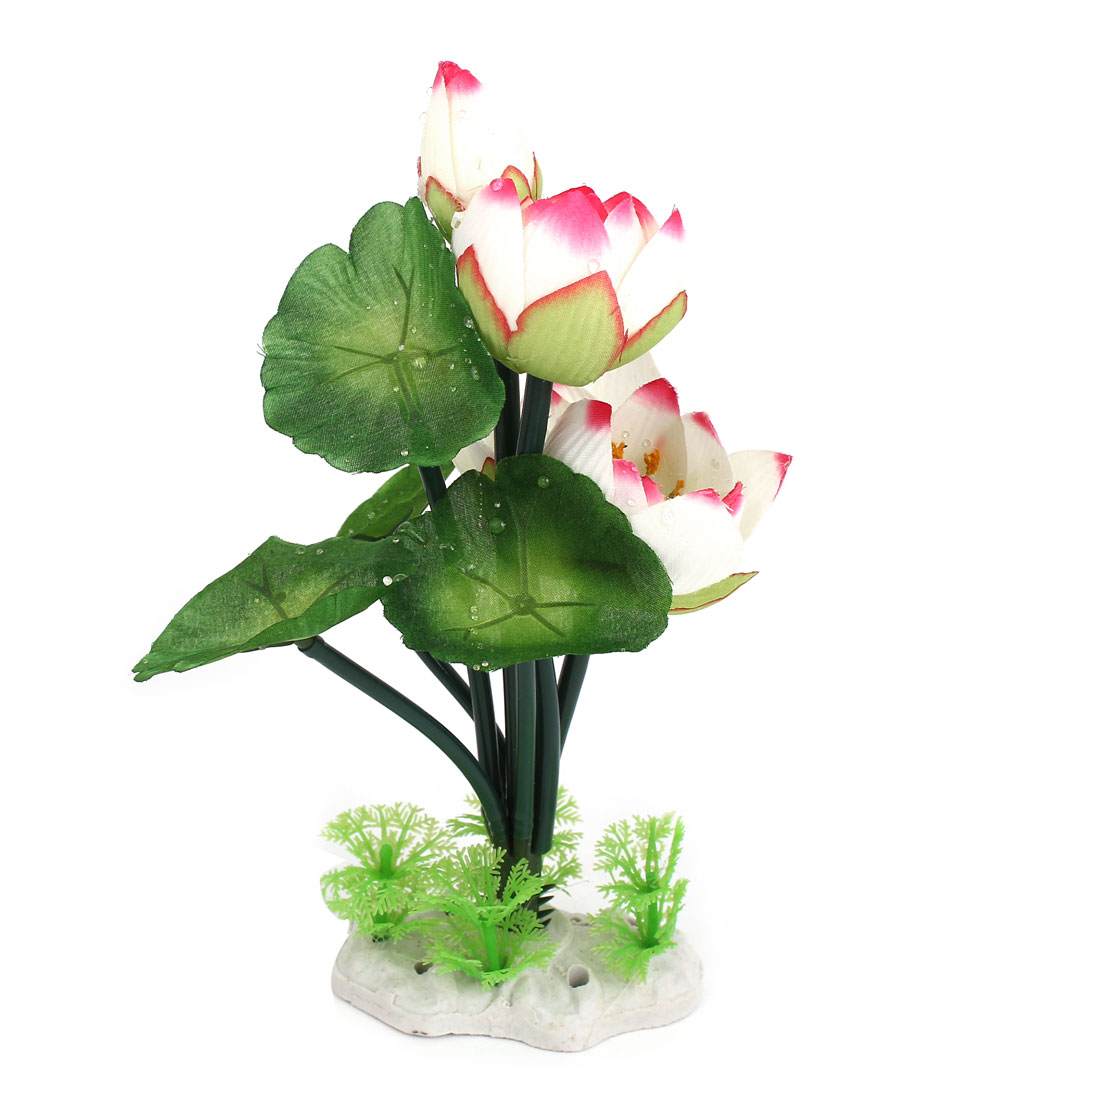 21cm Height Green White Pink Plastic Emulational Aquarium Lotus Flower Plant Decor for Fish Tank Fishbowl